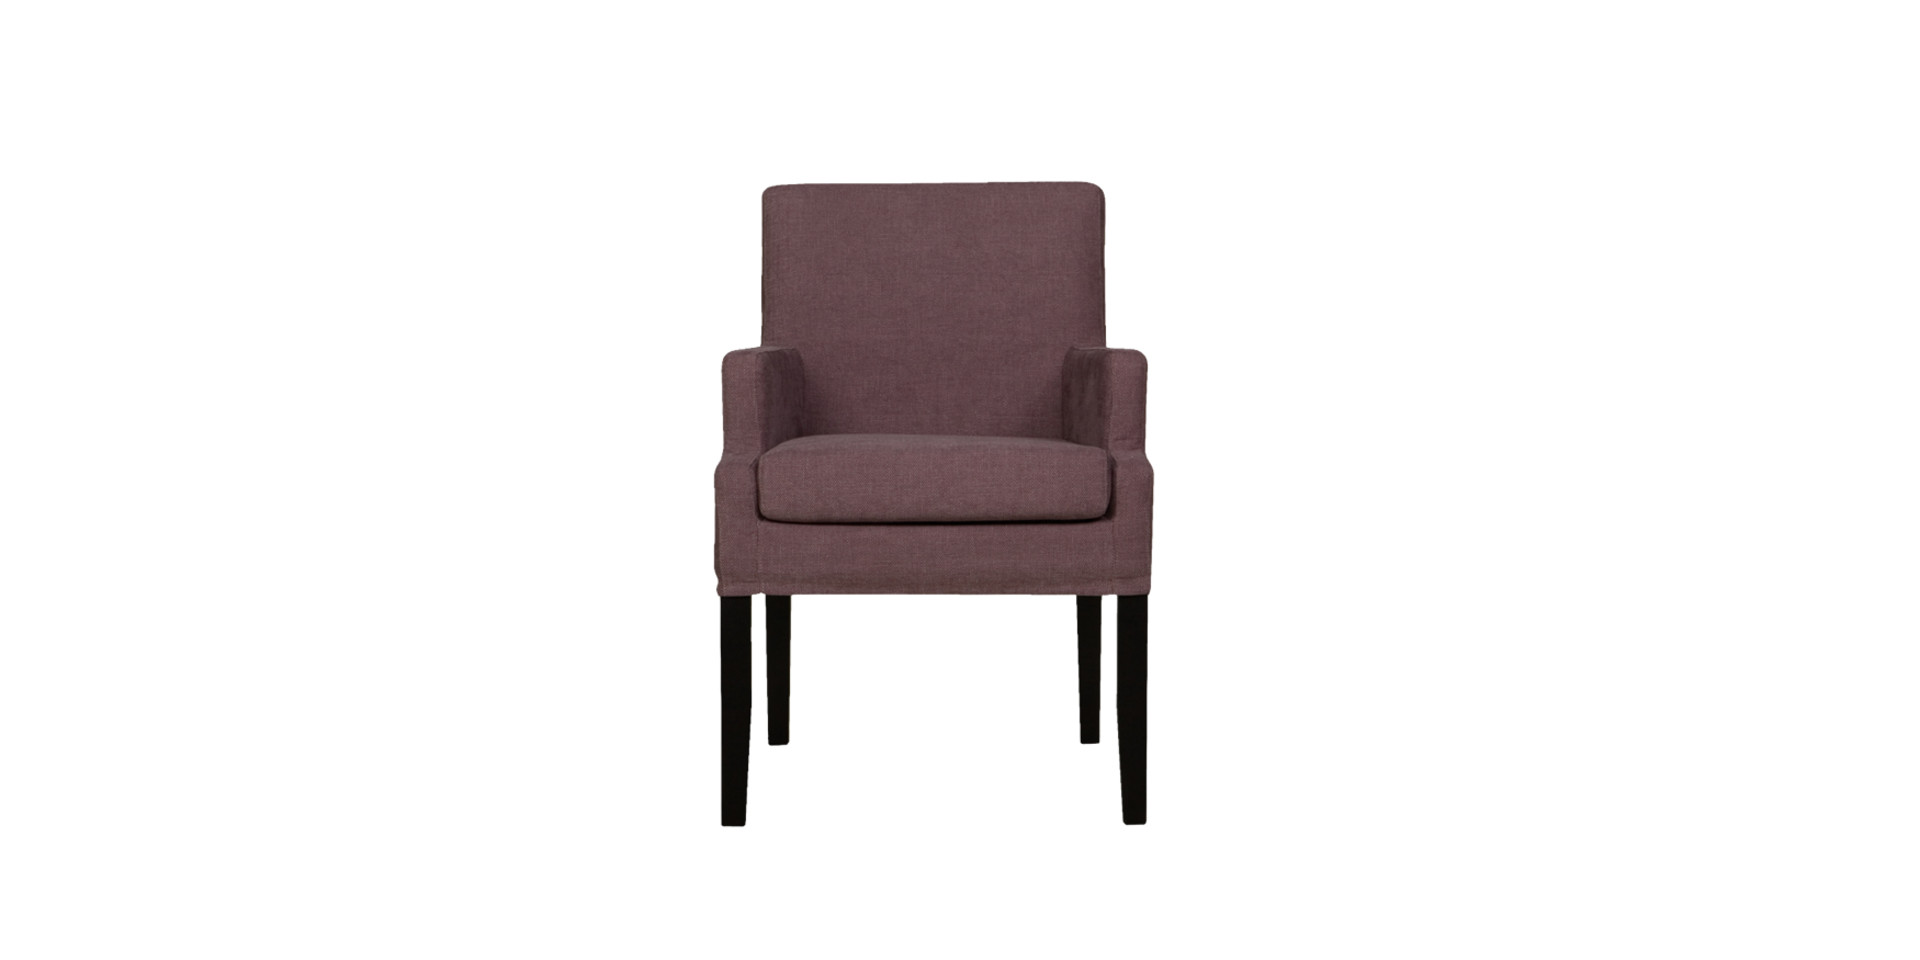 sits-merlin-fauteuil-chair_brest116_plum_1